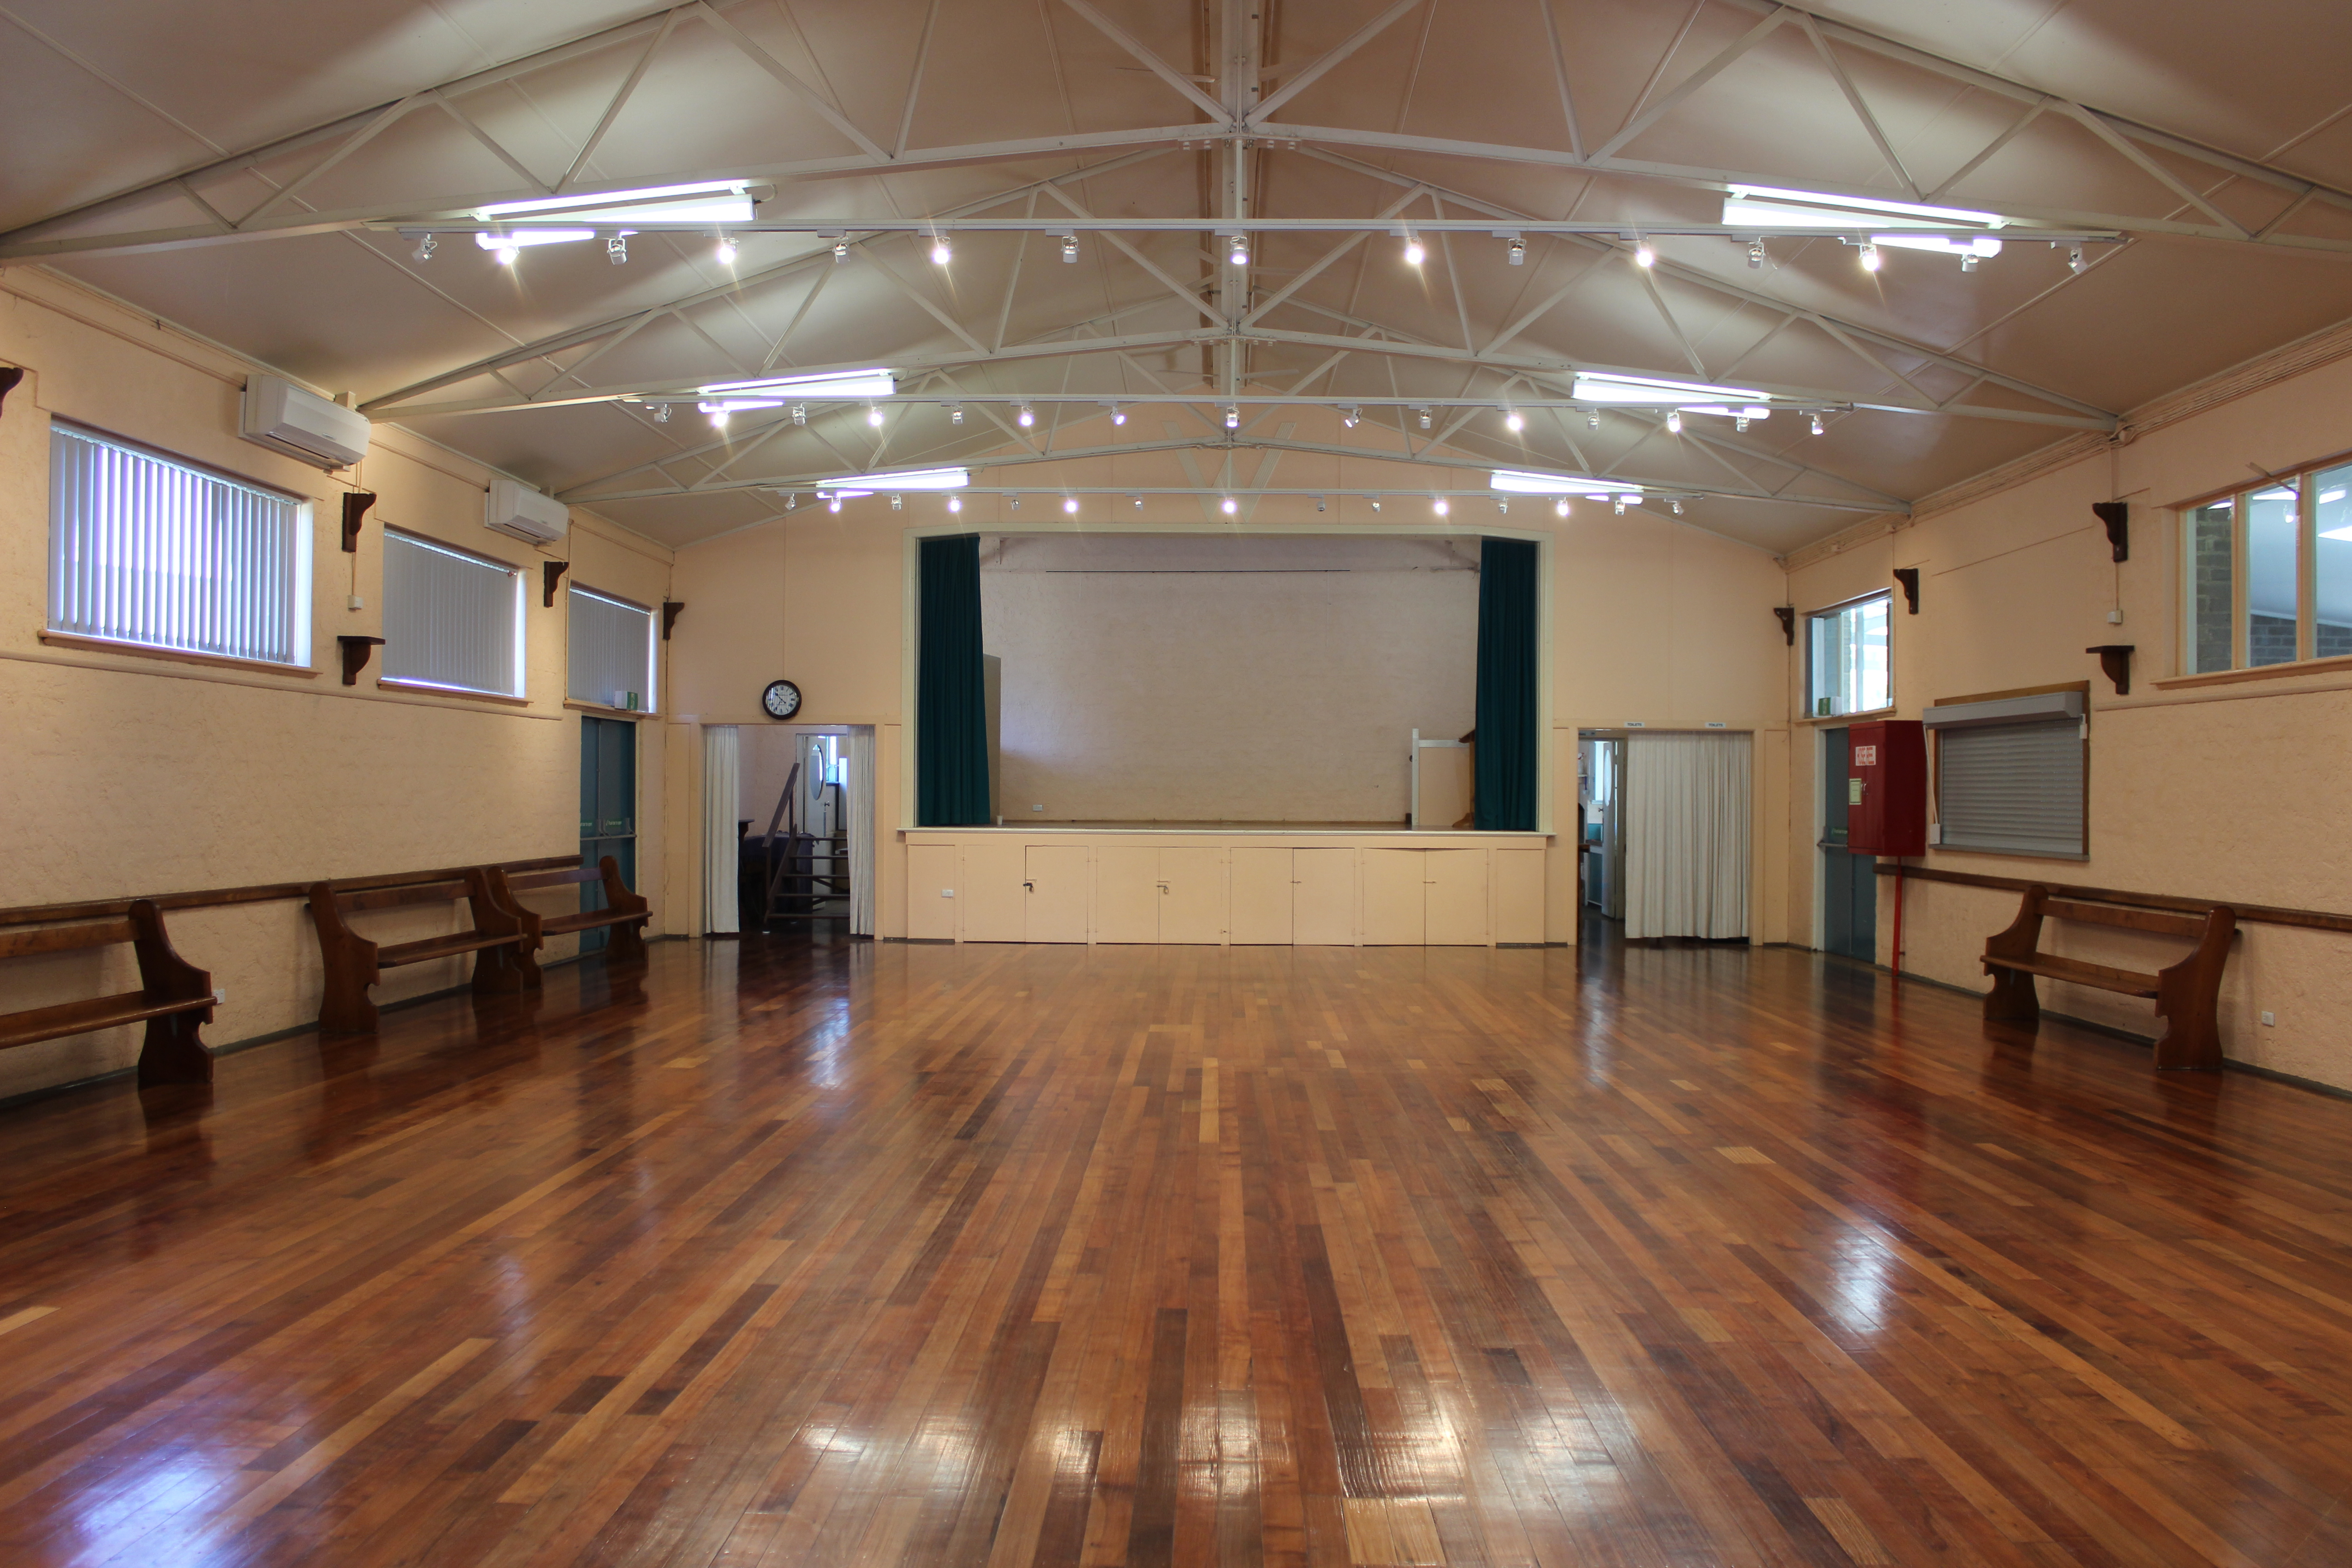 Beautifully furbished main hall with front stage area